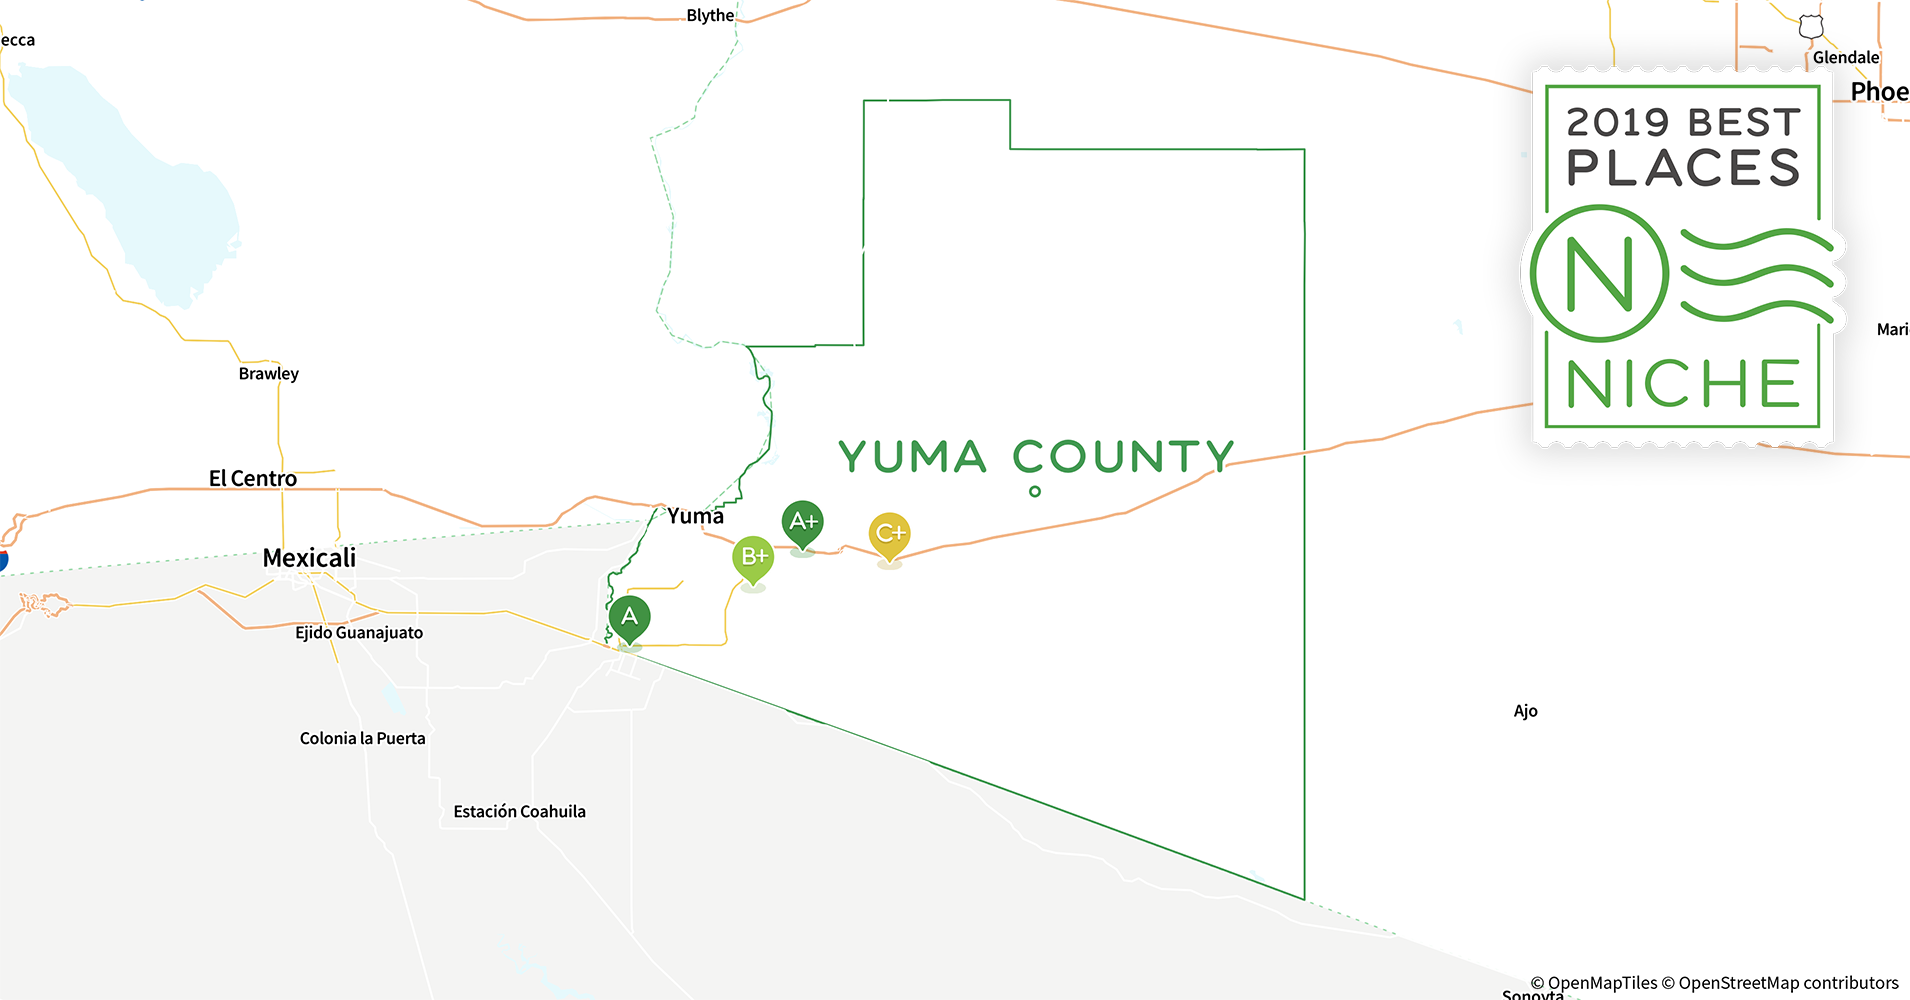 Street Map Of Yuma Arizona.2019 Best Places To Live In Yuma County Az Niche